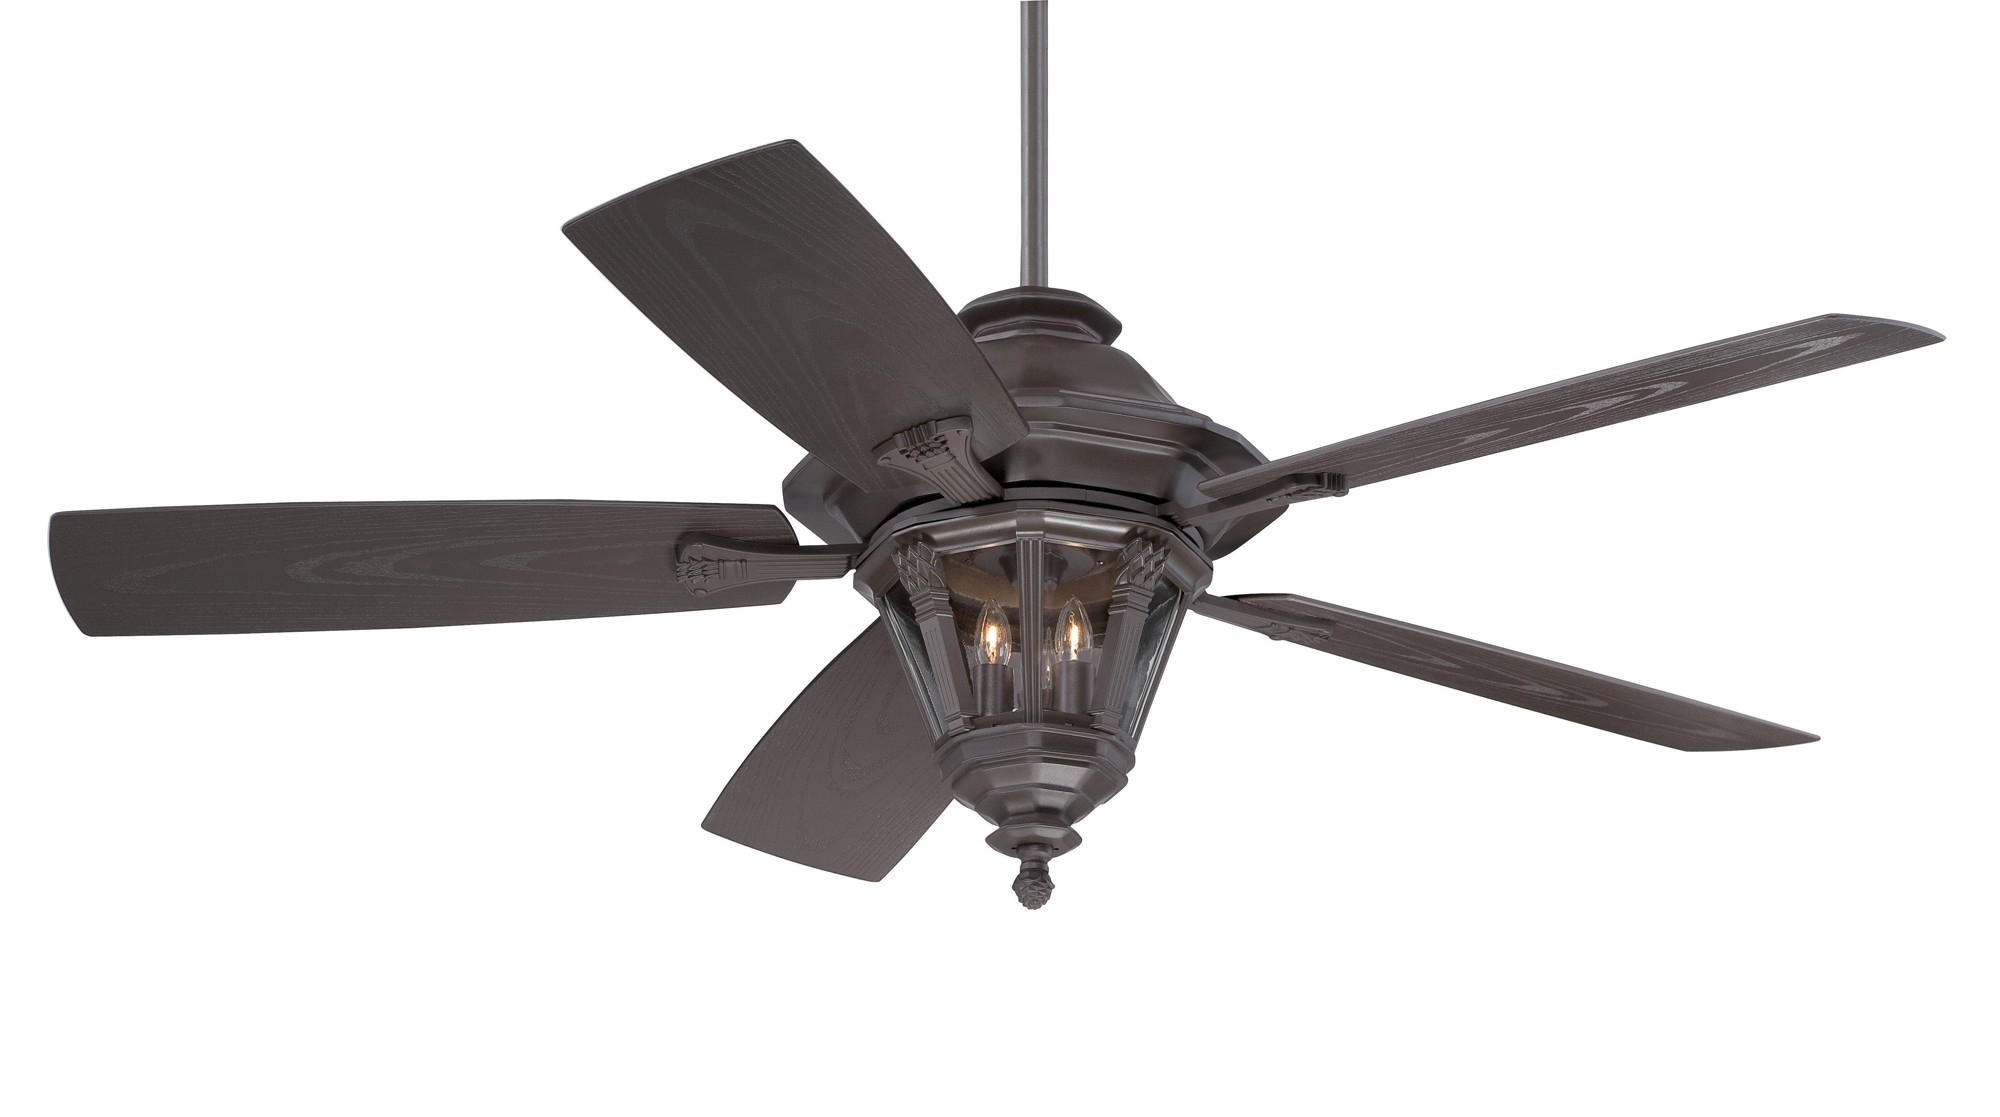 Top 10 Unique Outdoor Ceiling Fans 2018 Warisan Lighting, Best Throughout Well Liked Large Outdoor Ceiling Fans With Lights (View 19 of 20)